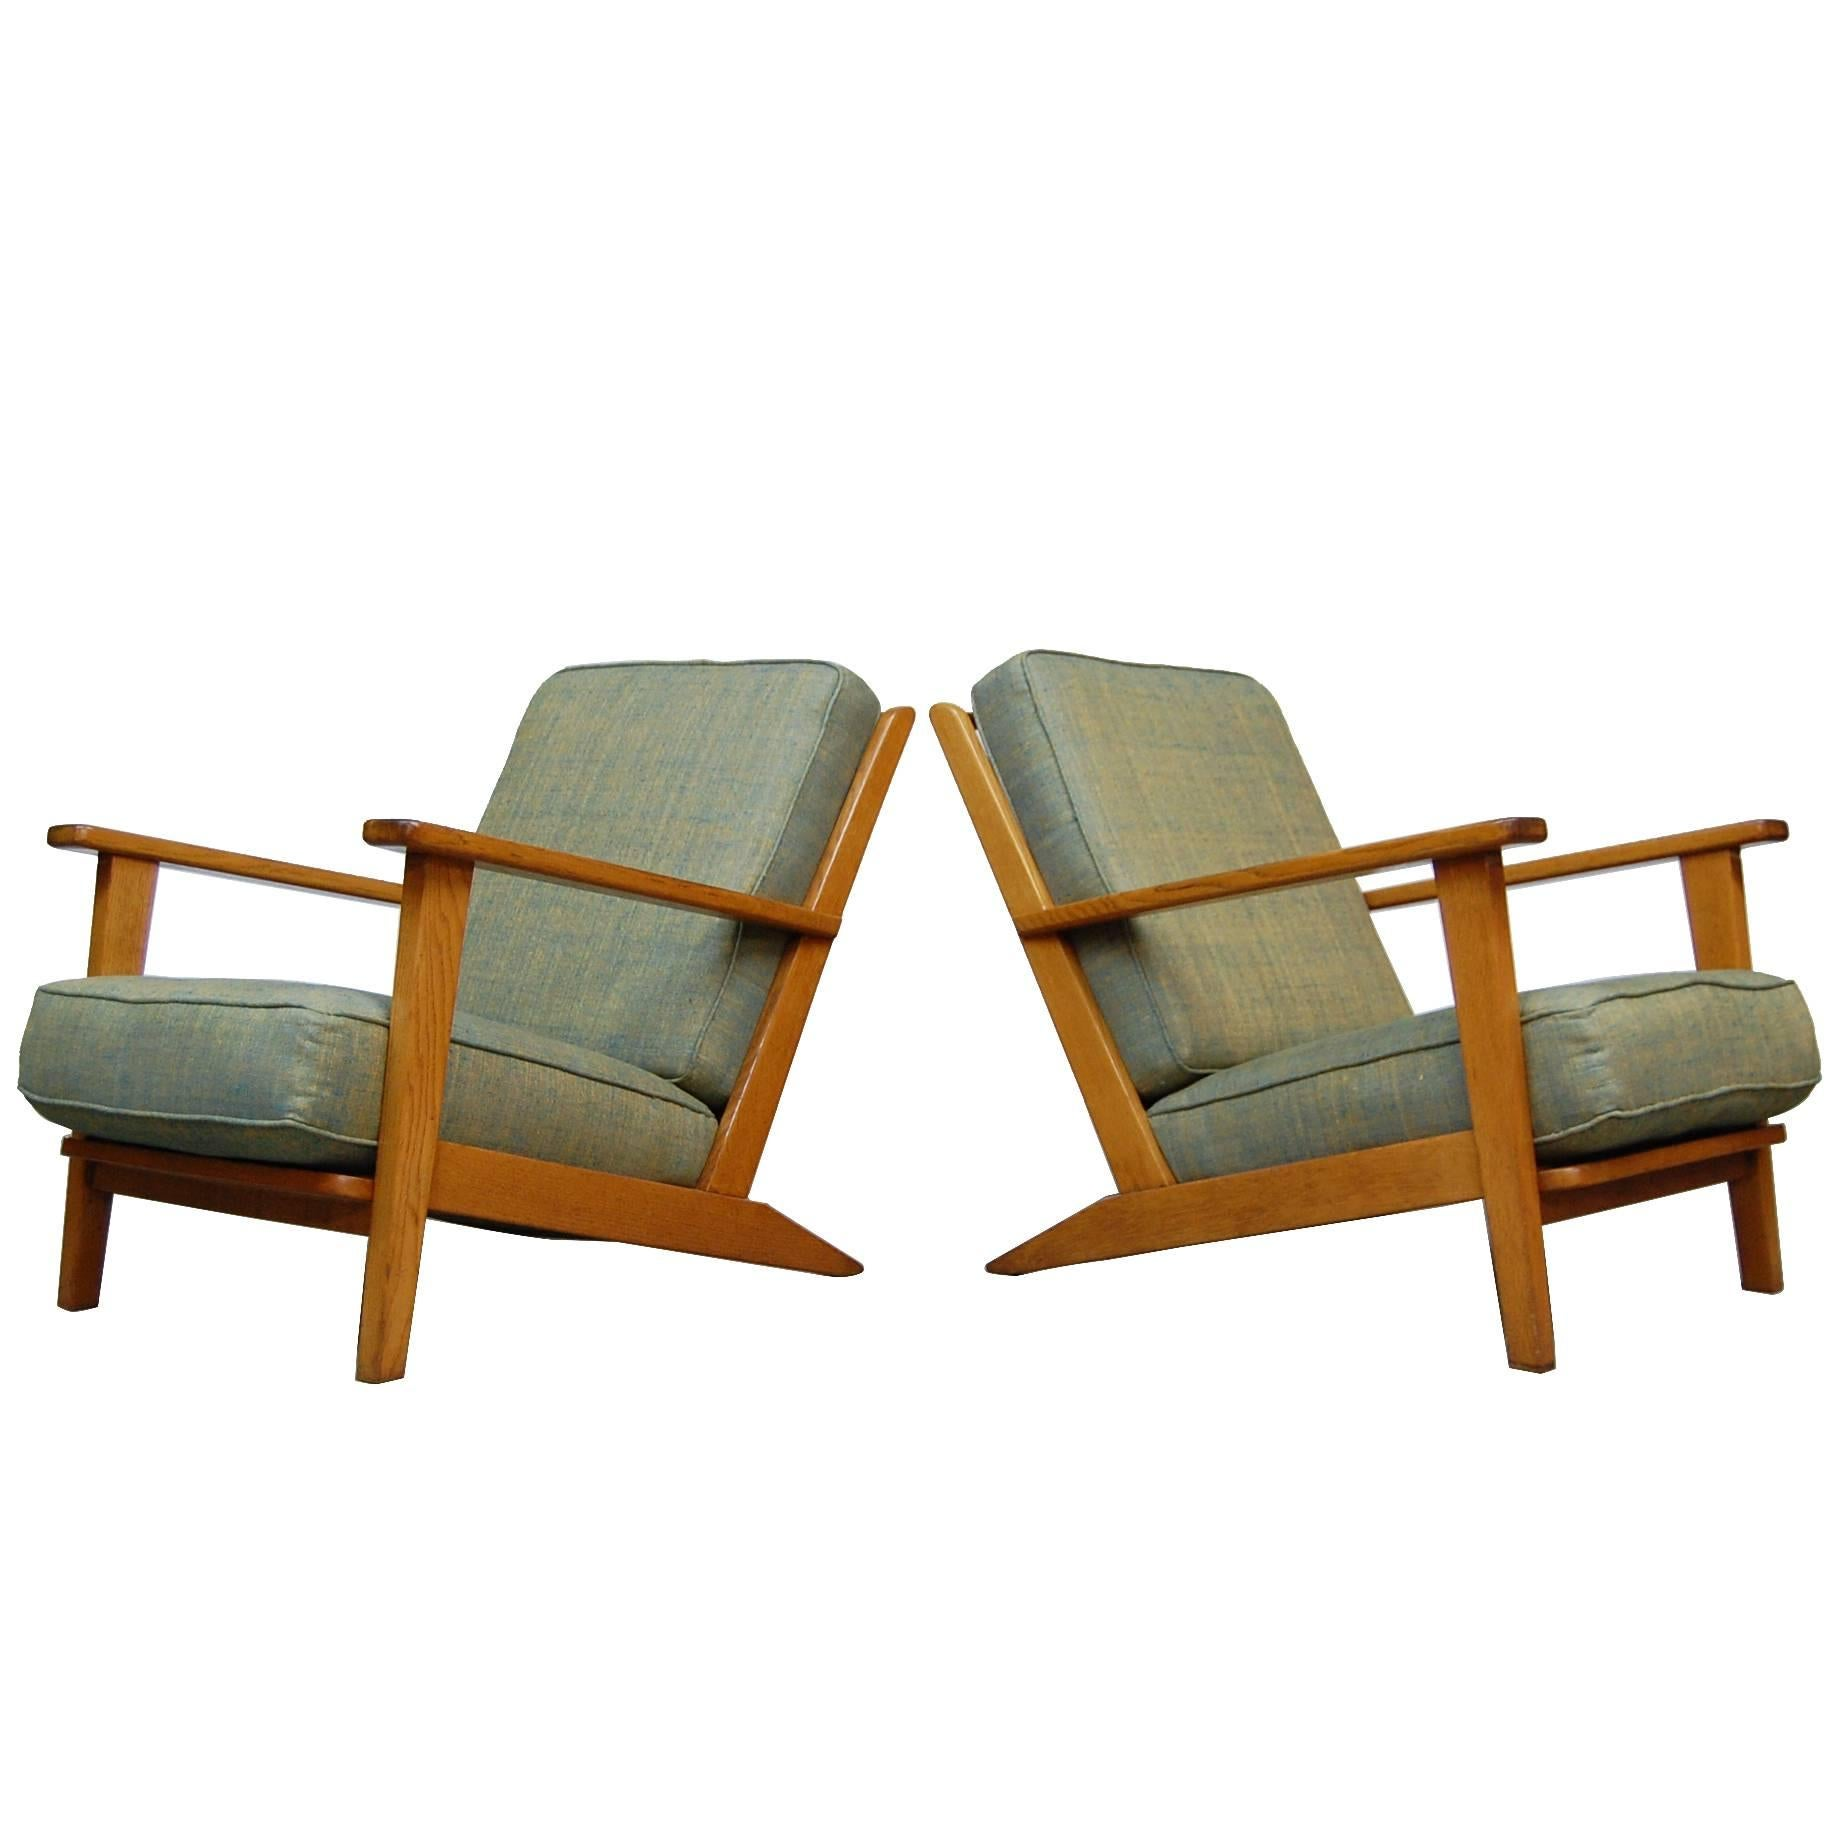 Pair of Modernist Lounge Chairs from France